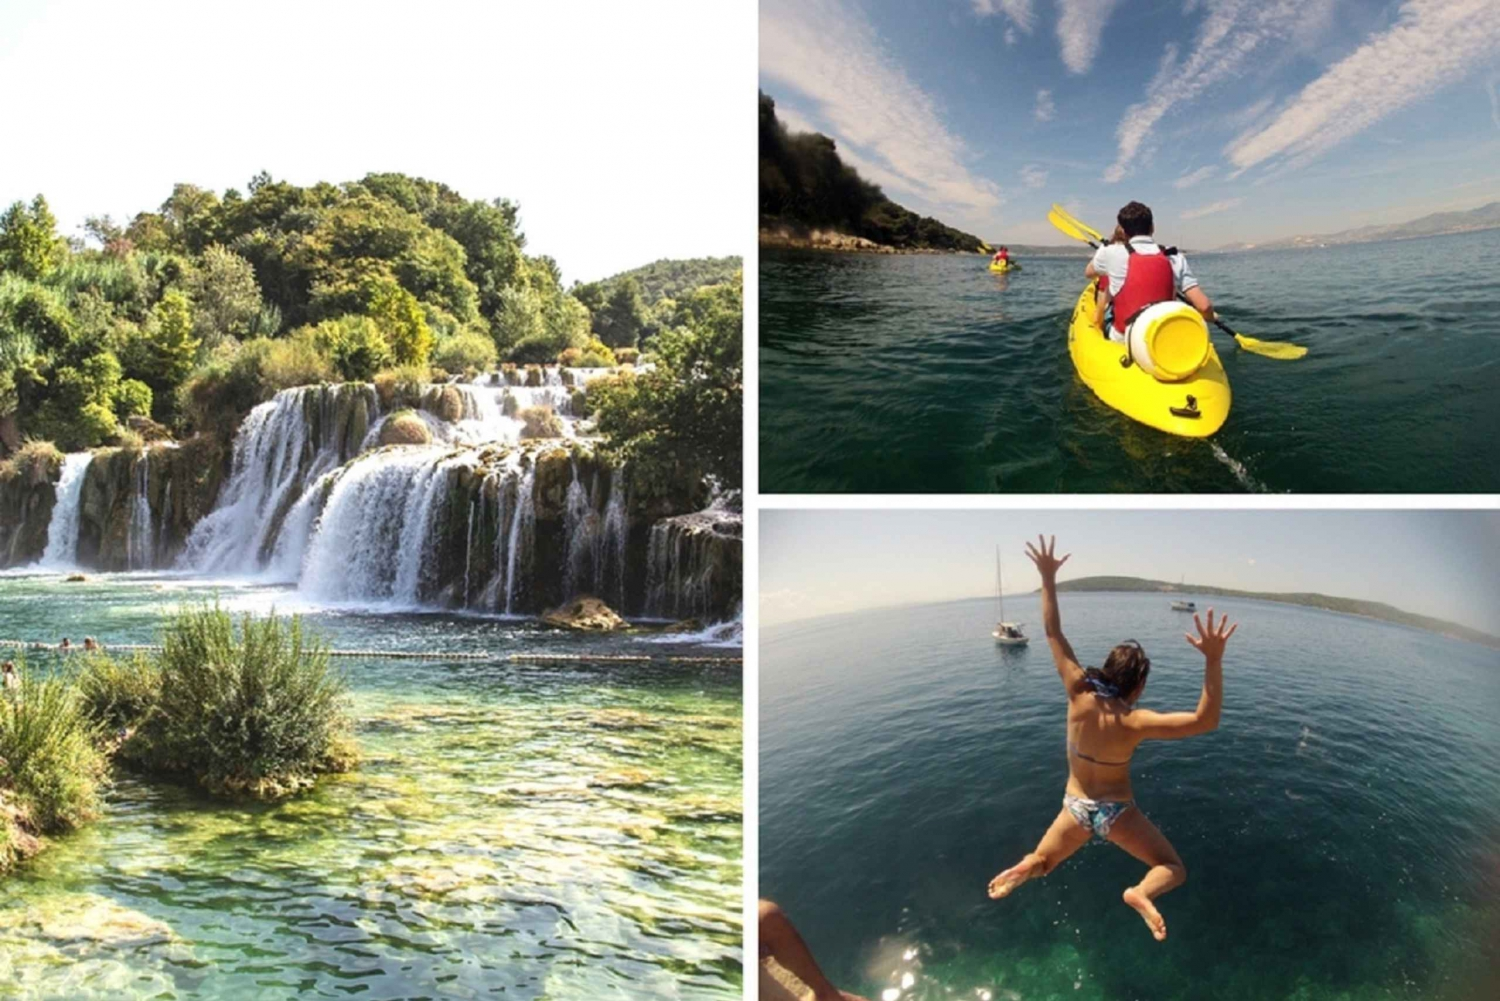 Krka Waterfalls and Morning Sea Kayaking in Split